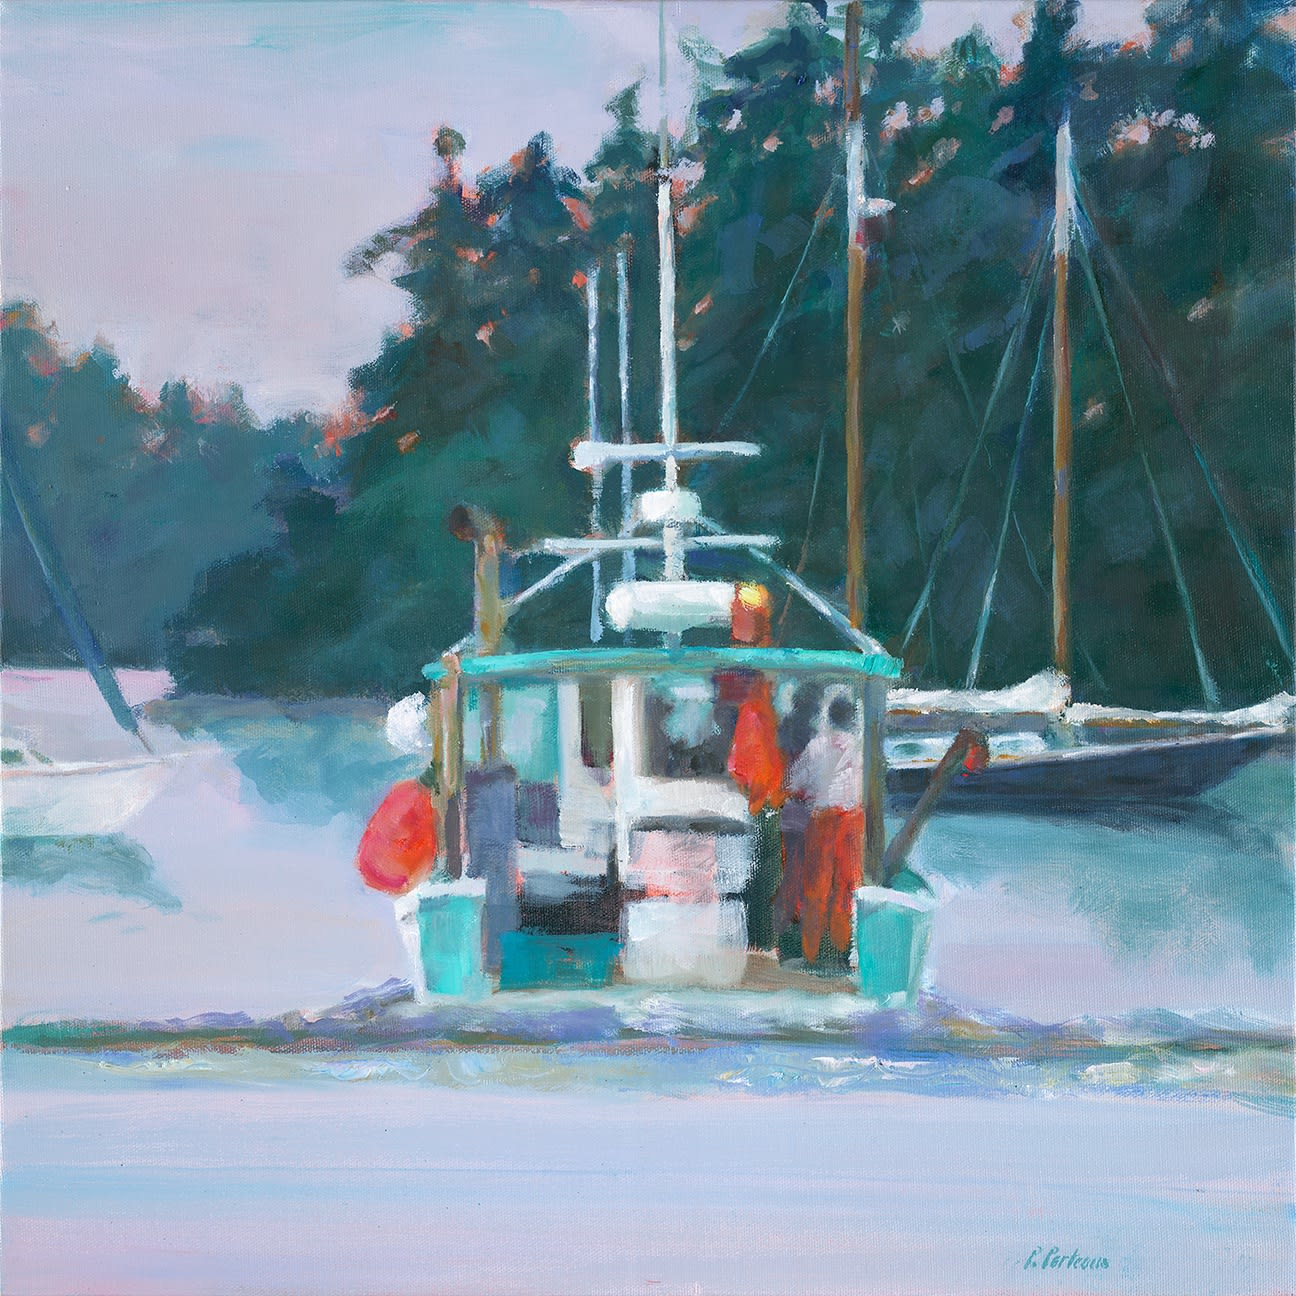 Phoebe Porteous: From the Water's Edge